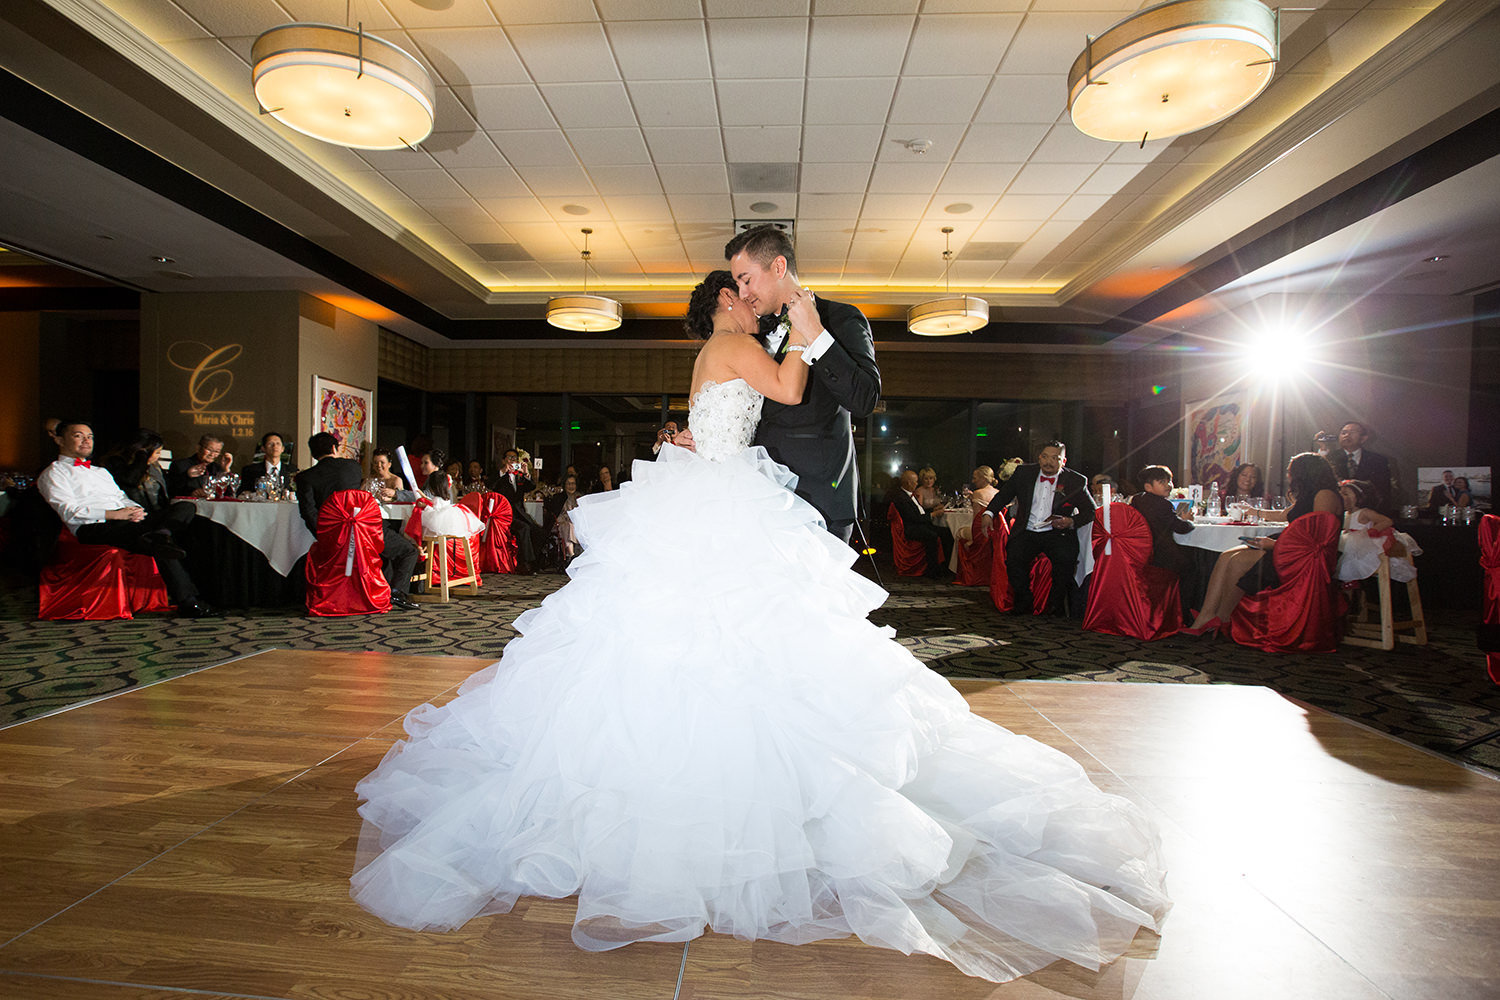 Flawless lighting this wedding reception first dance at the University Club